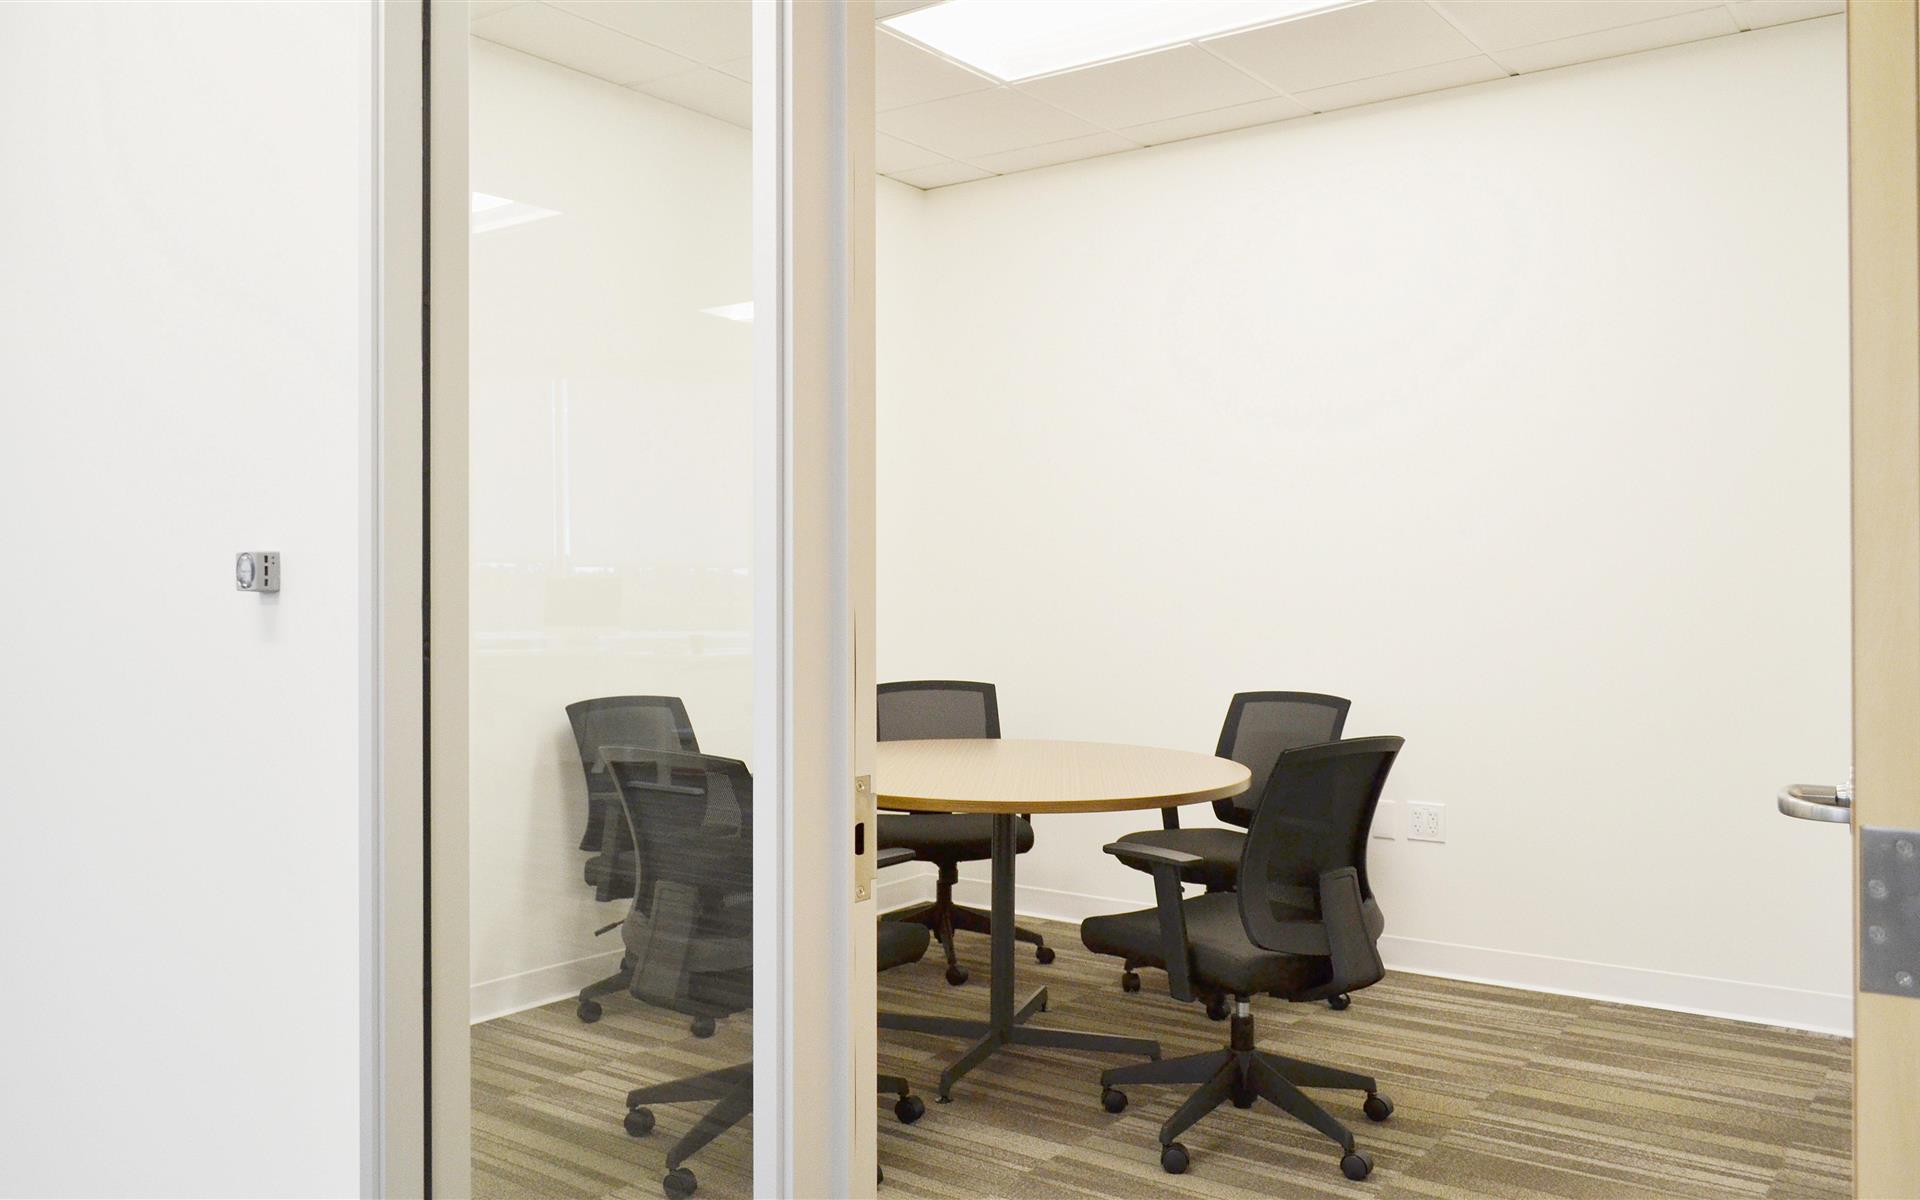 RobotX Space - Meeting Room 2